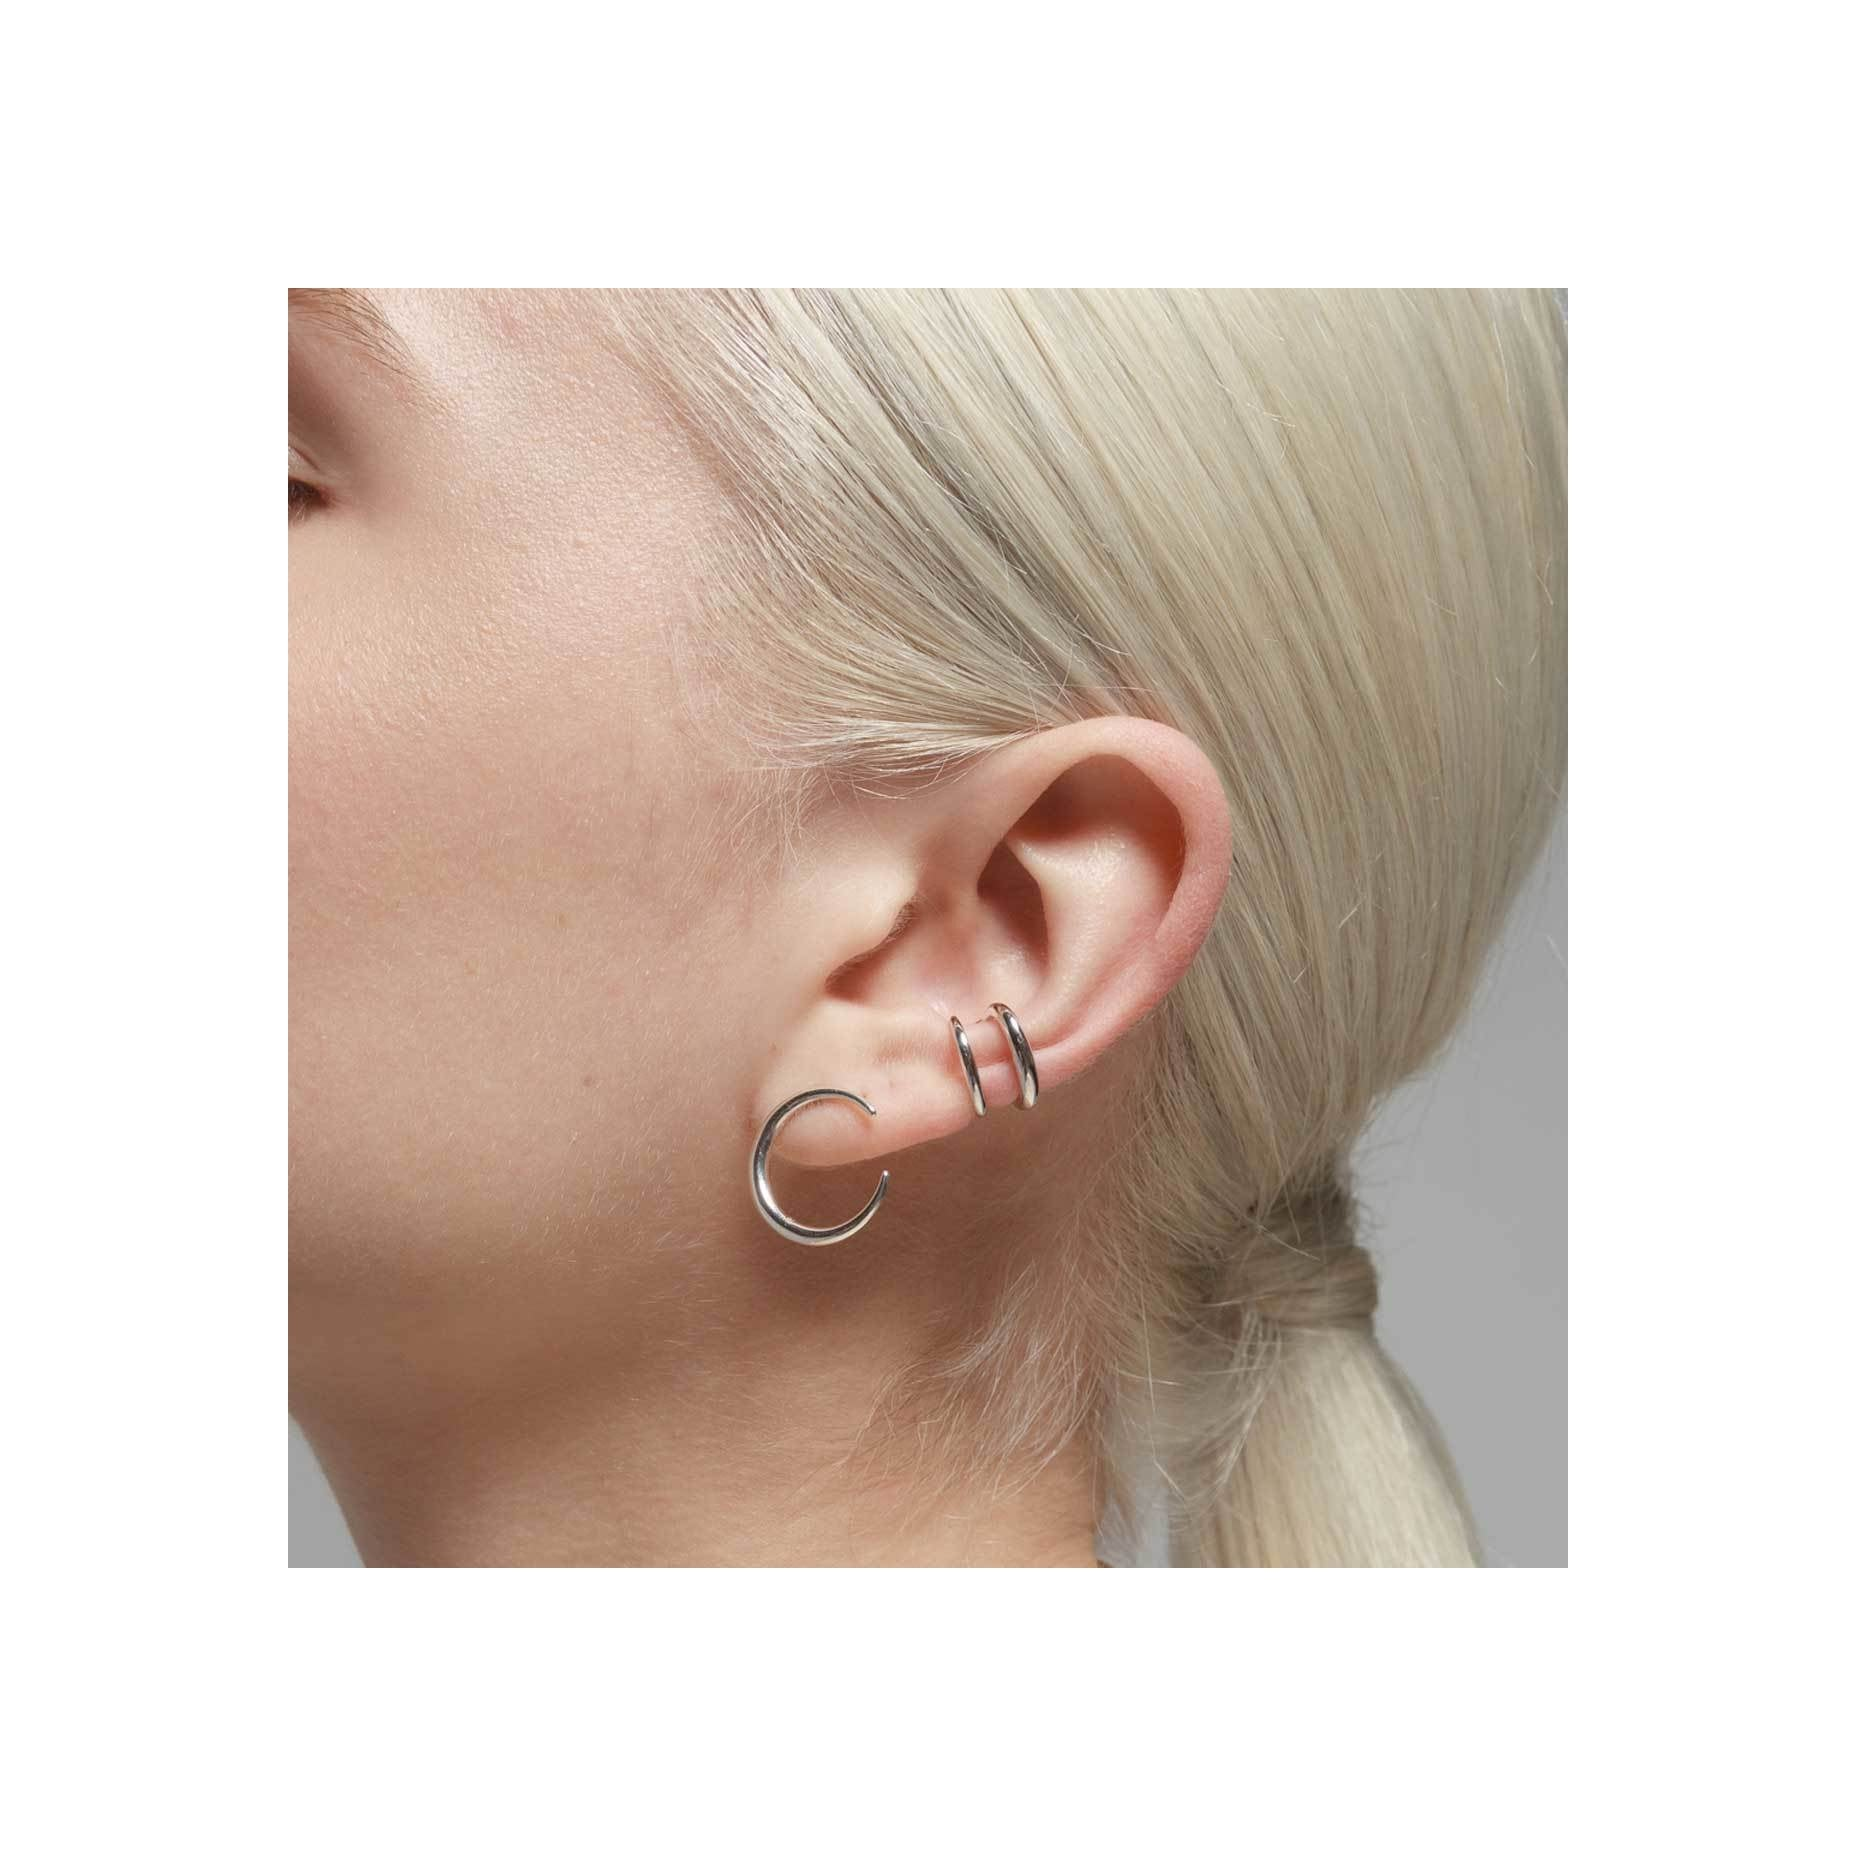 Twin Tusk Ear Cuff - Gabriela Artigas